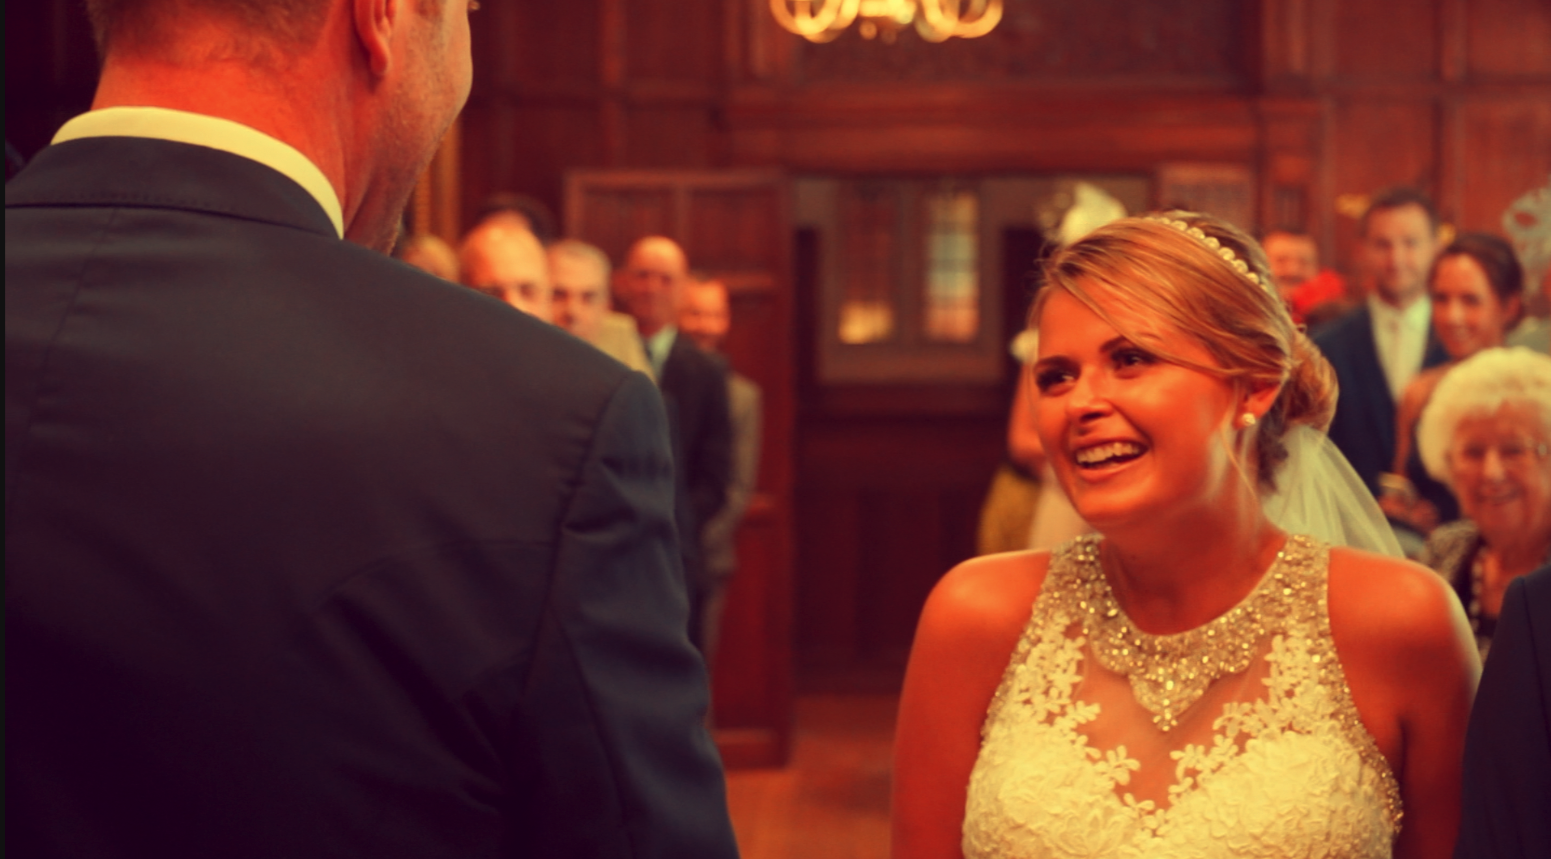 Image: Walking down the aisle - so many emotions in one shot!